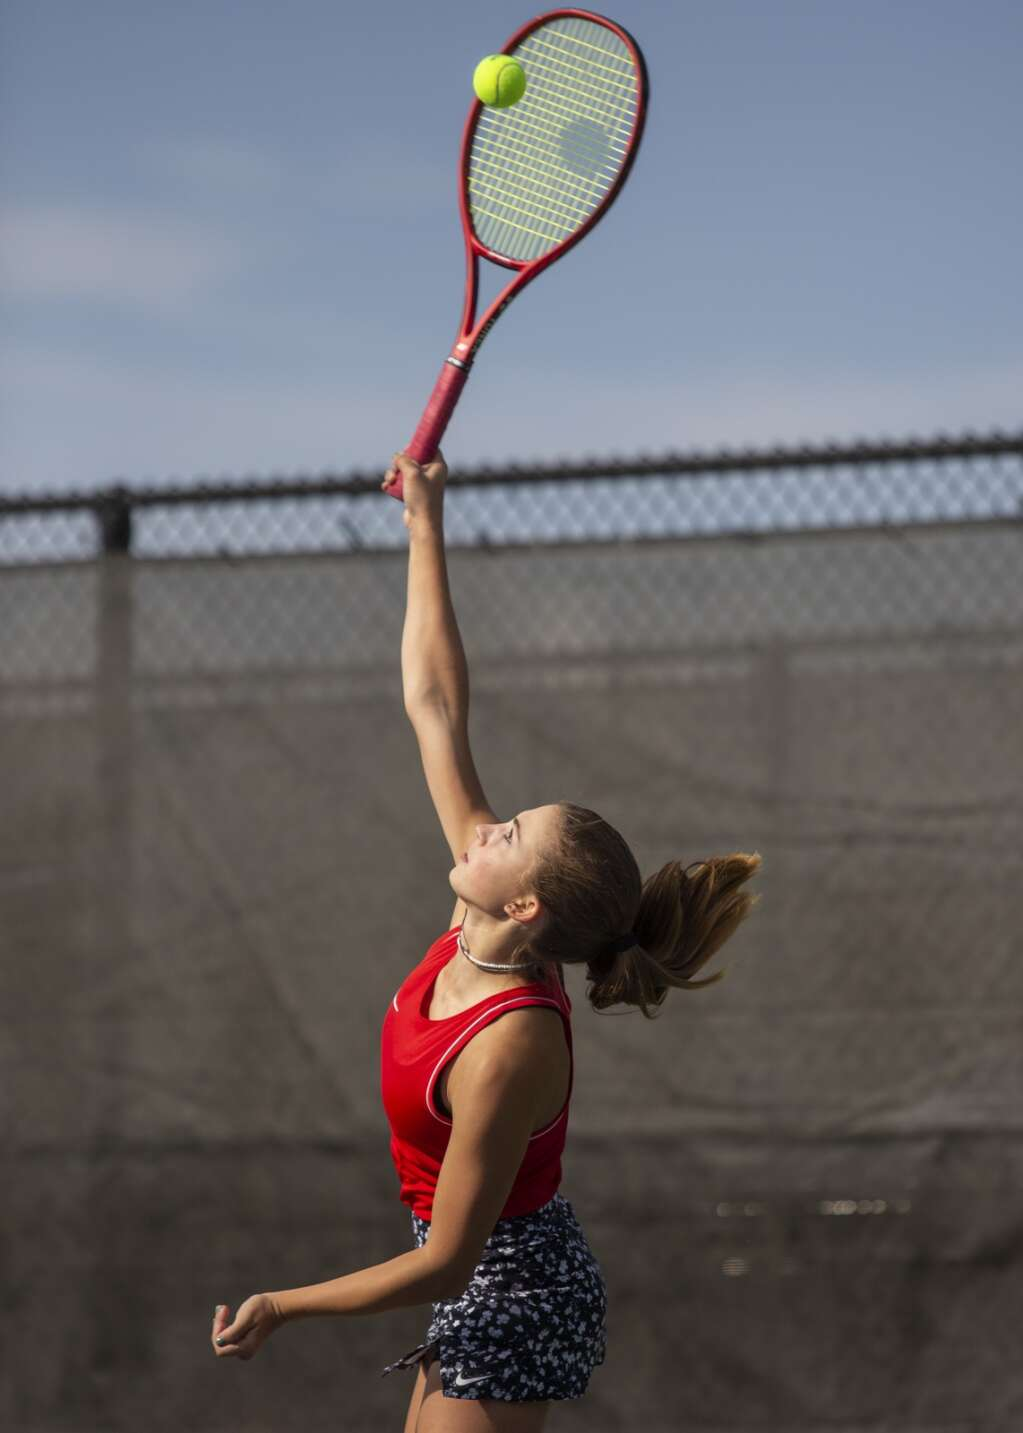 Park City High School junior Olivia Tarmina serves the ball during her second singles matchup against Murray High School at the PC MARC Thursday afternoon, Sept. 23, 2021. (Tanzi Propst/Park Record)